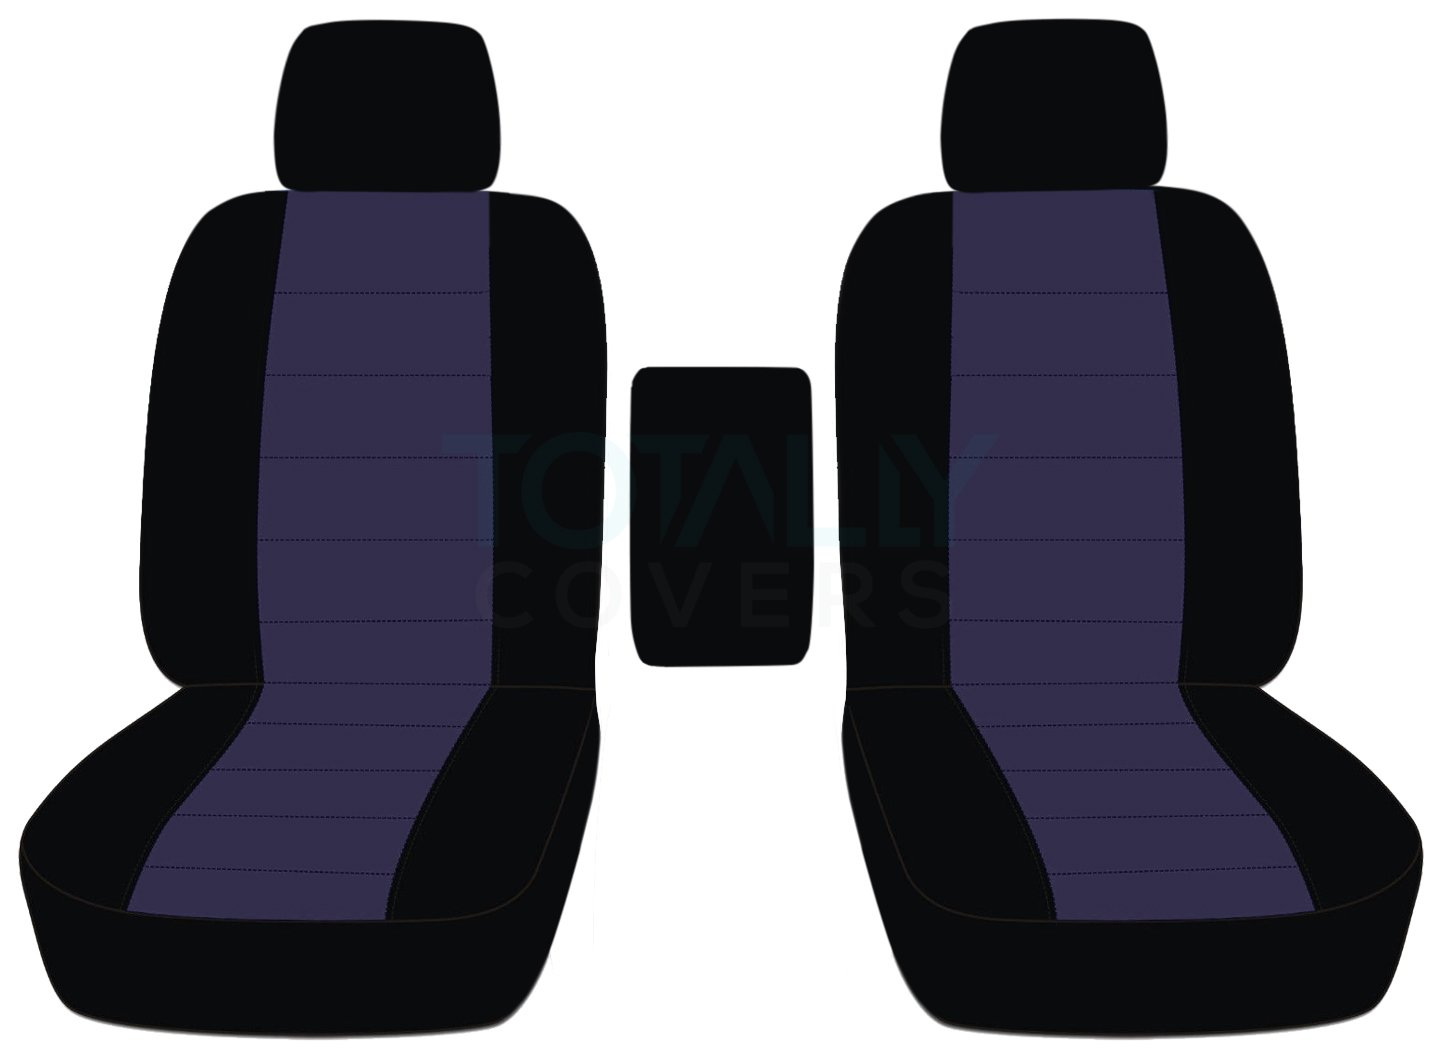 21 Colors Black /& Gray Totally Covers Fits 2009-2014 Ford F-150 Two-Tone Truck Bucket Seat Covers with Center Armrest 2010 2011 2012 2013 F-Series F150 Front